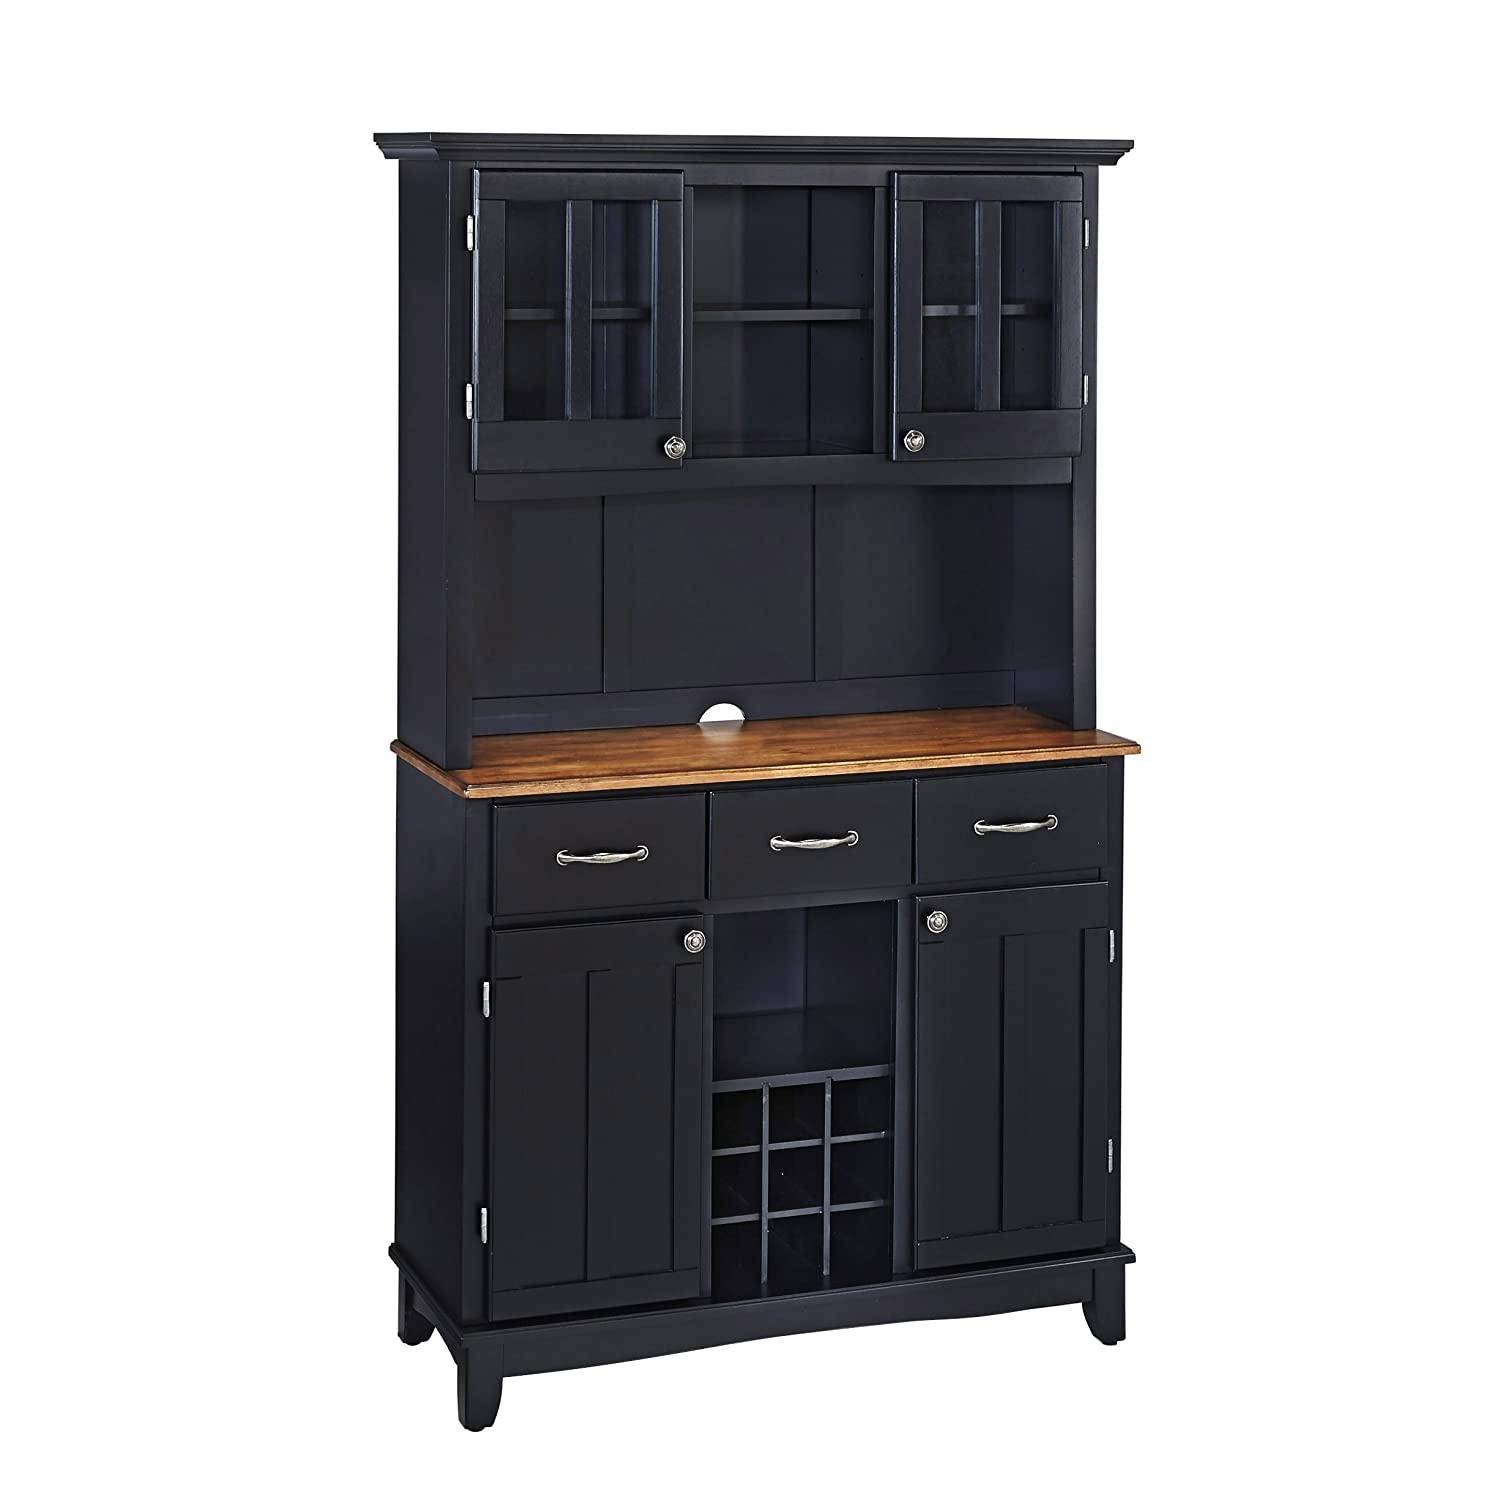 maple paint fusion mineral hardware it rustic even oak hutch was black update buffet more to added in new coal with and